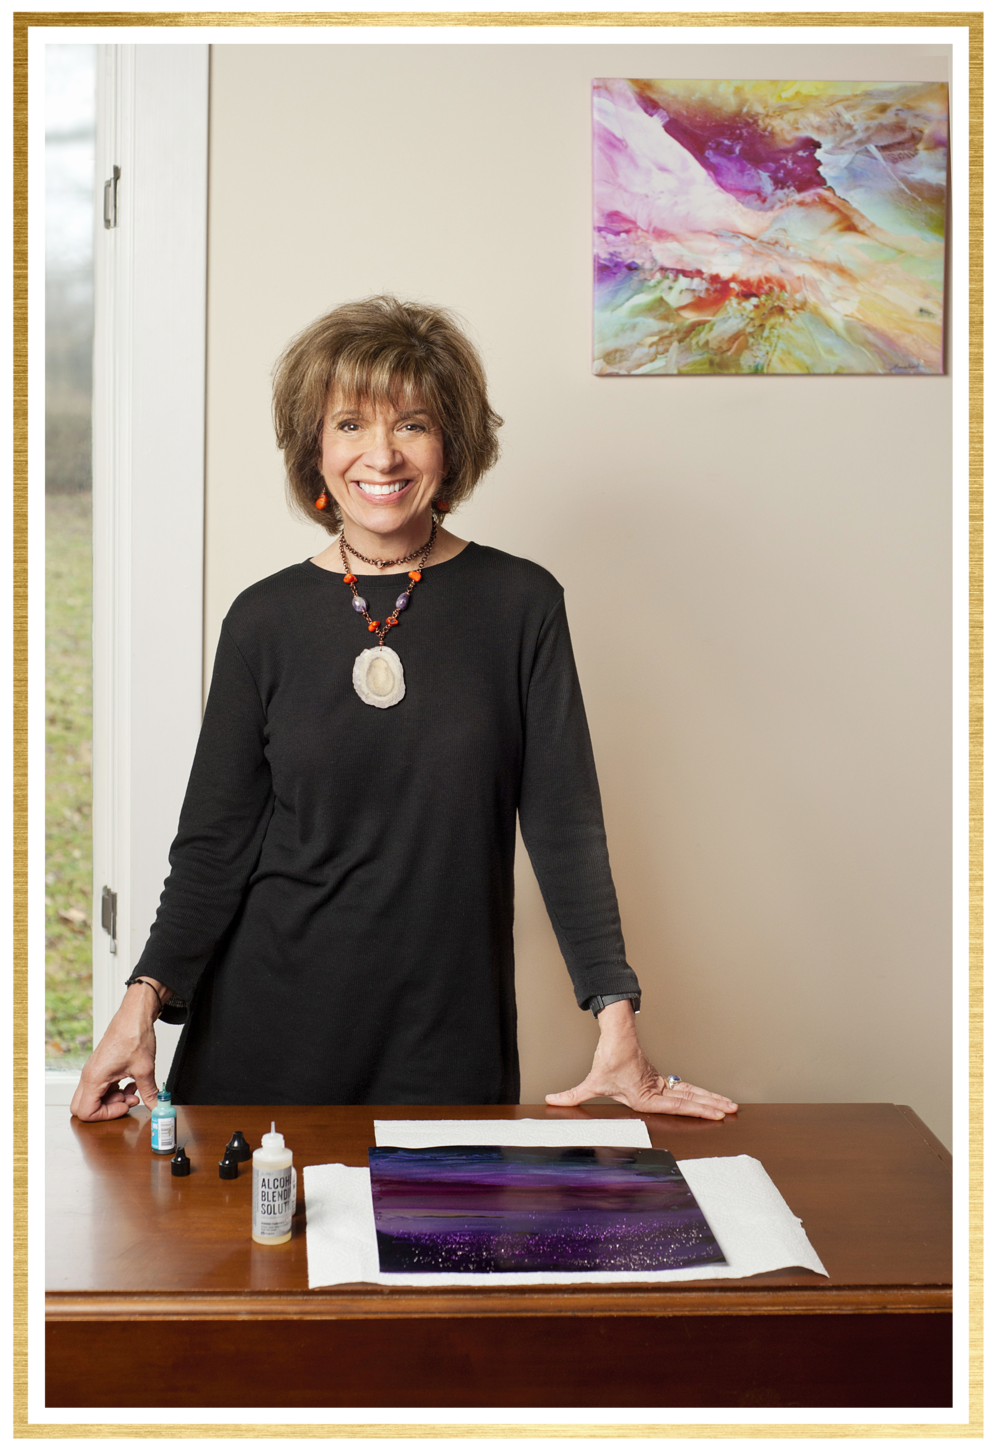 I'm Alexis Bonavitacola. - I'm an artist, teacher, entrepreneur, and passionate human being dedicated to leading a purposeful life.I specialize in abstract art, especially the energy, motion, and flow of alcohol inks. I have 20 years as an educator, hold a Ph.D in education, love teaching students of all levels, and taking my art to new levels.I believe in the value of sharing our talents and giving back to inspire others to grow.I adore alcohol inks. If you are here with me, you love them as well as I do or you want to learn more about how to learn to go with the flow.